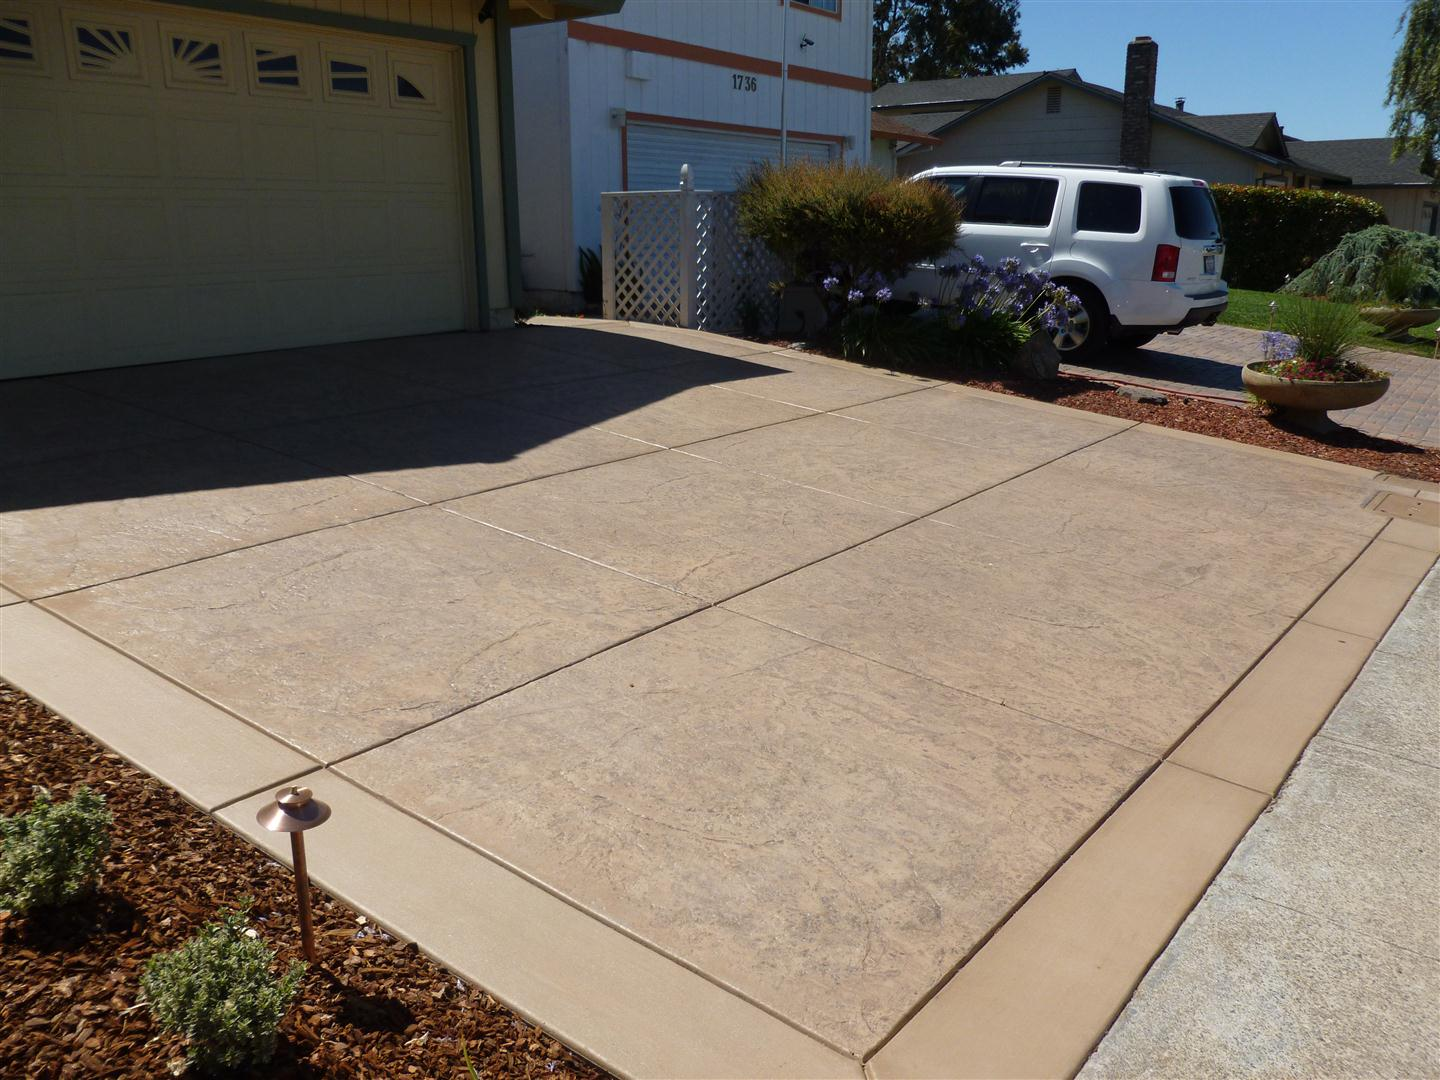 Completed project petaluma front back yard for New driveway ideas